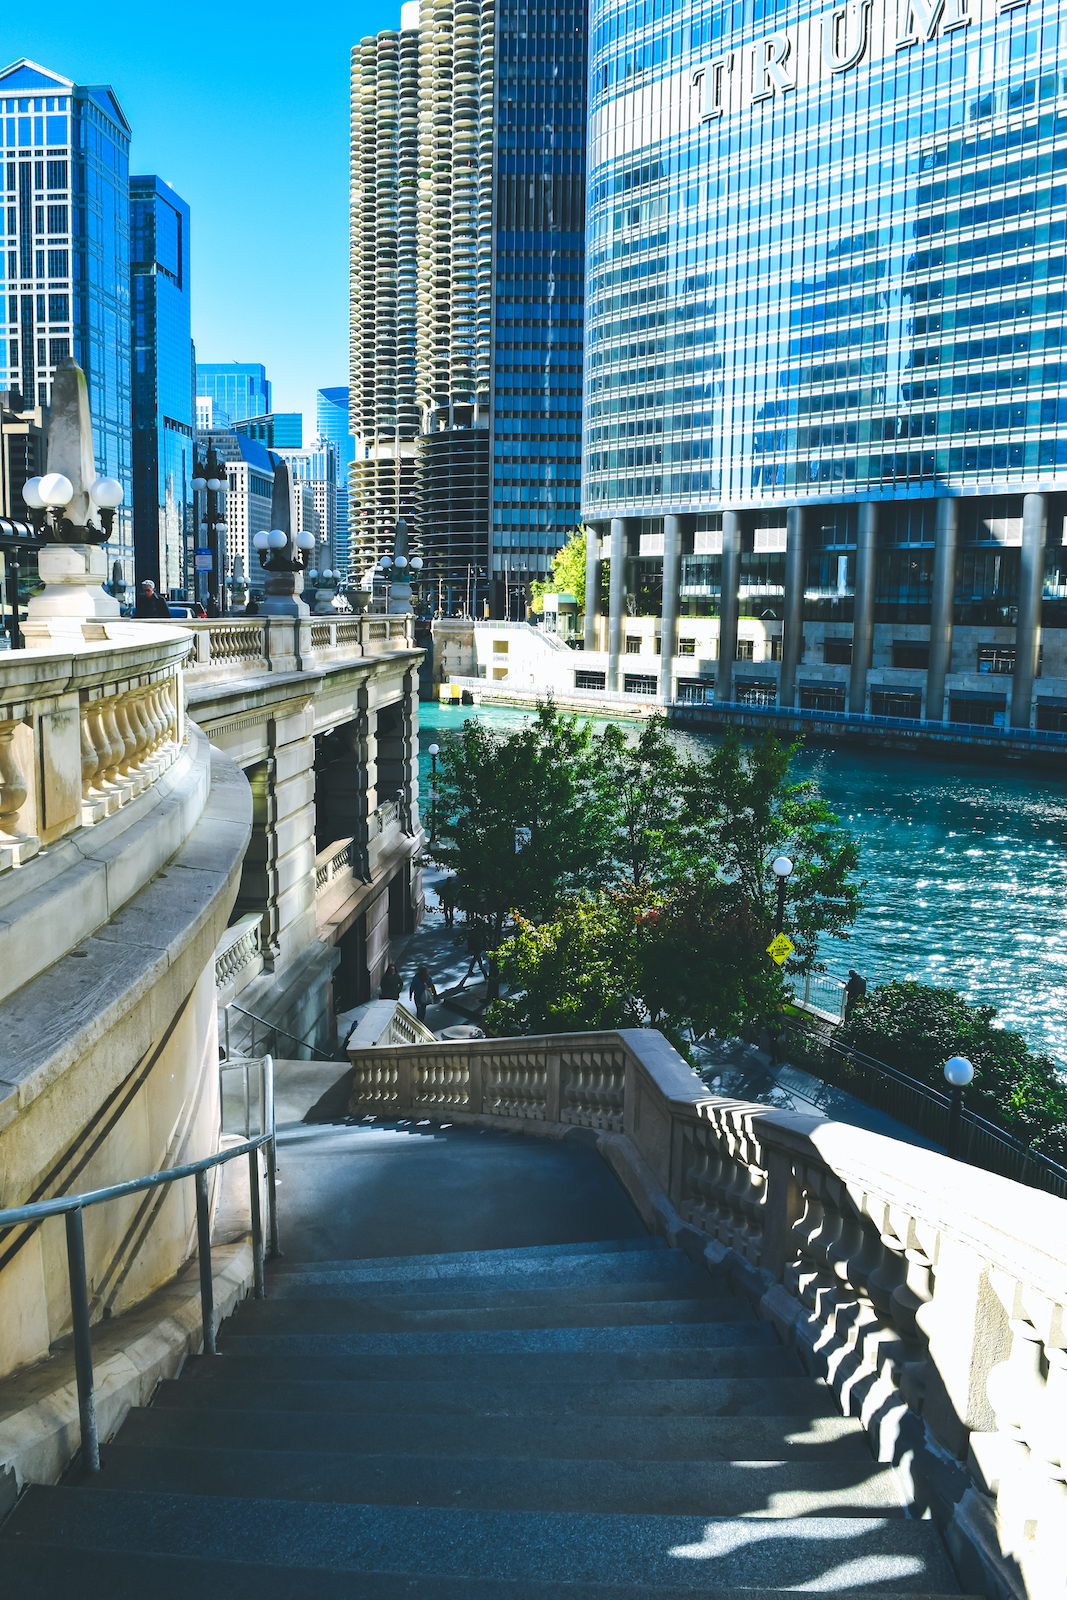 A First Timers Weekend City Guide to Chicago Riverwalk Chicago River Travel guide to chicago illinois blog what to do what to see where to go 3 days-11